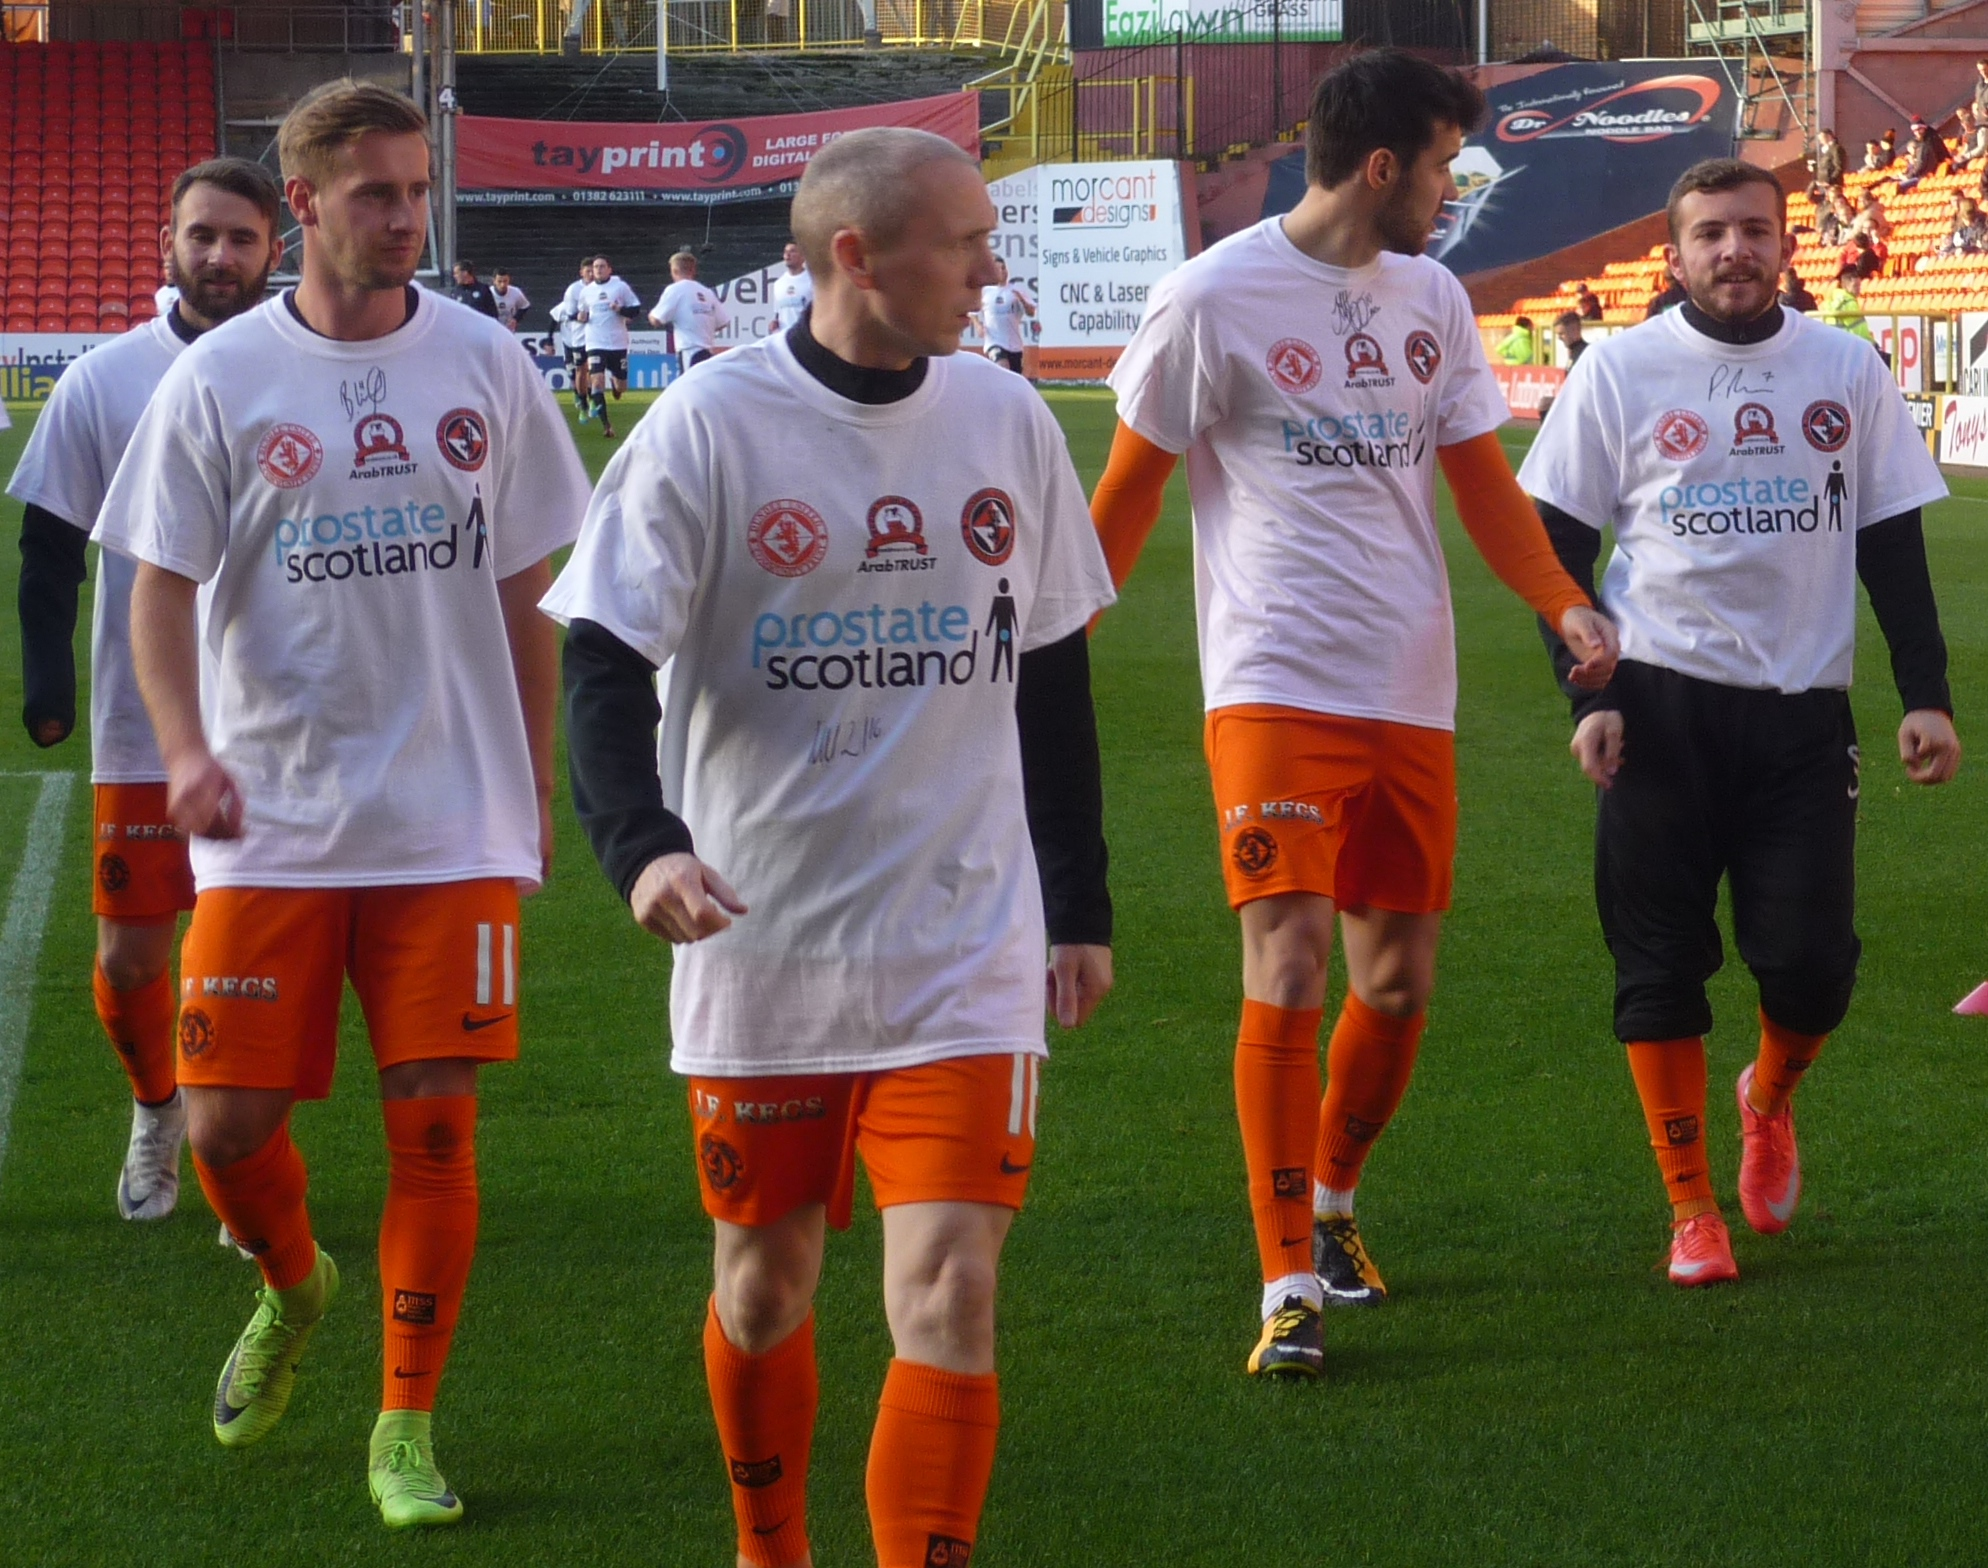 Dundee United warming up in Prostate Scotland t shirts